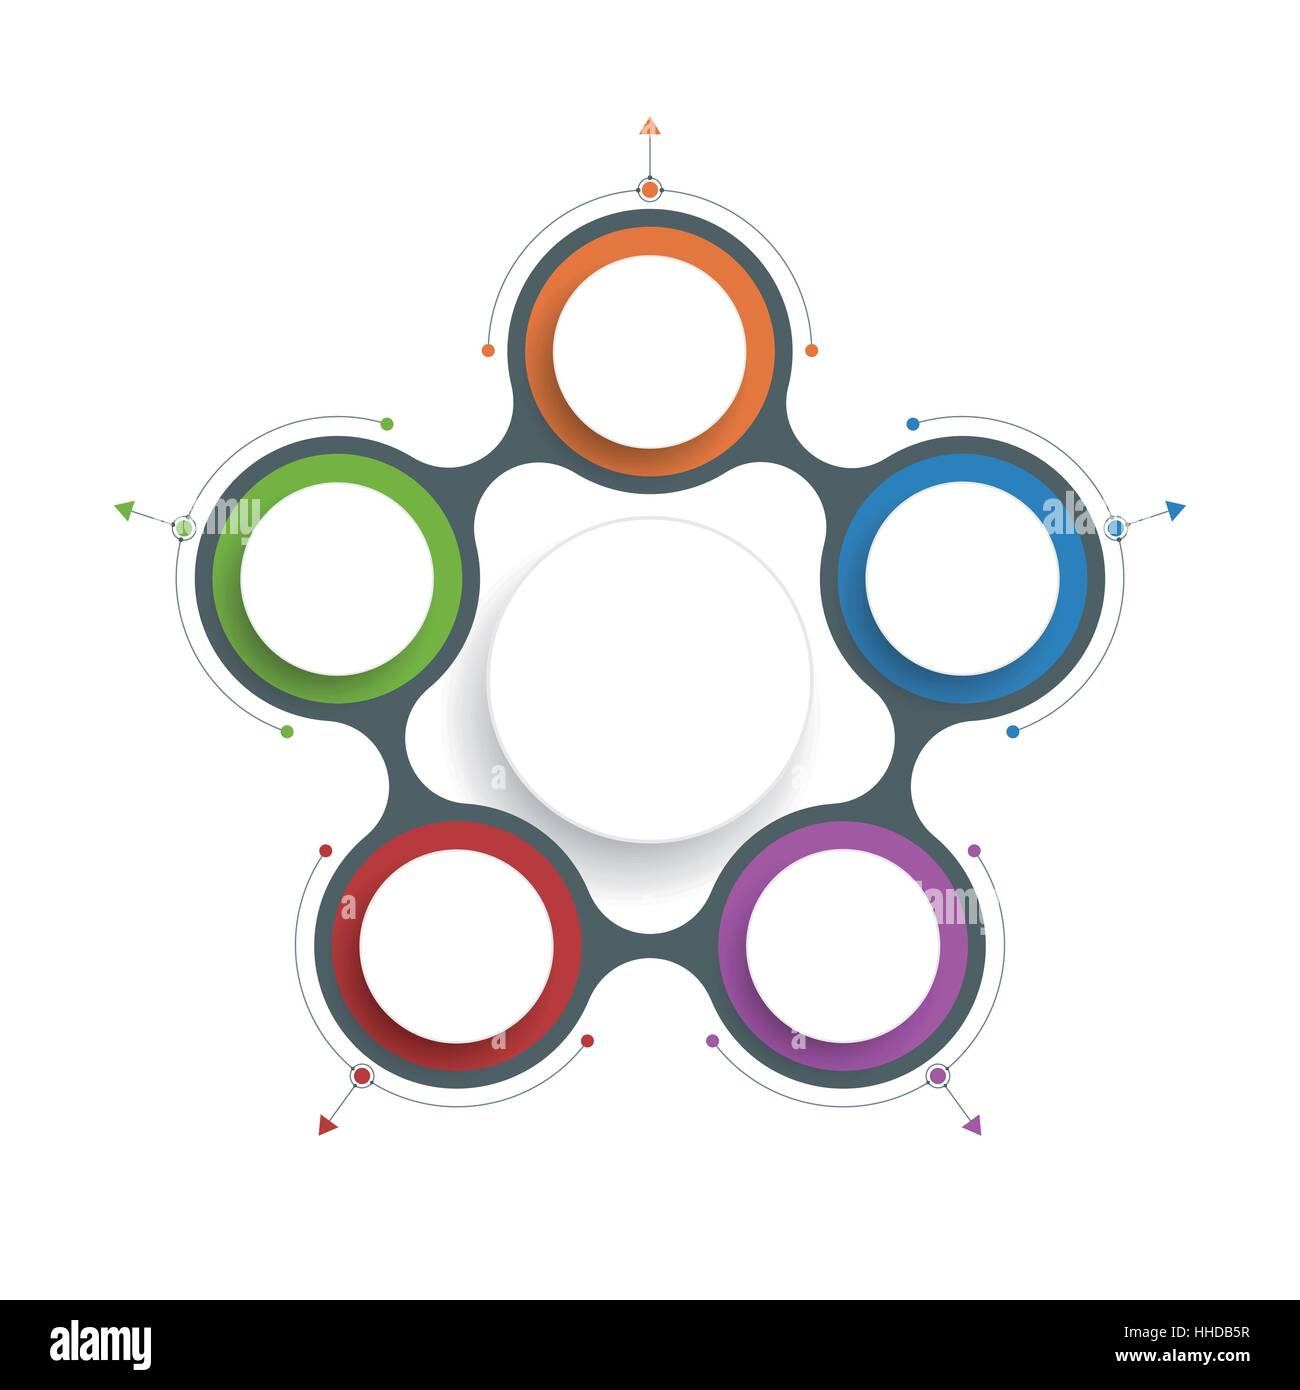 Circle Diagram Blank Image Collections How To Guide And